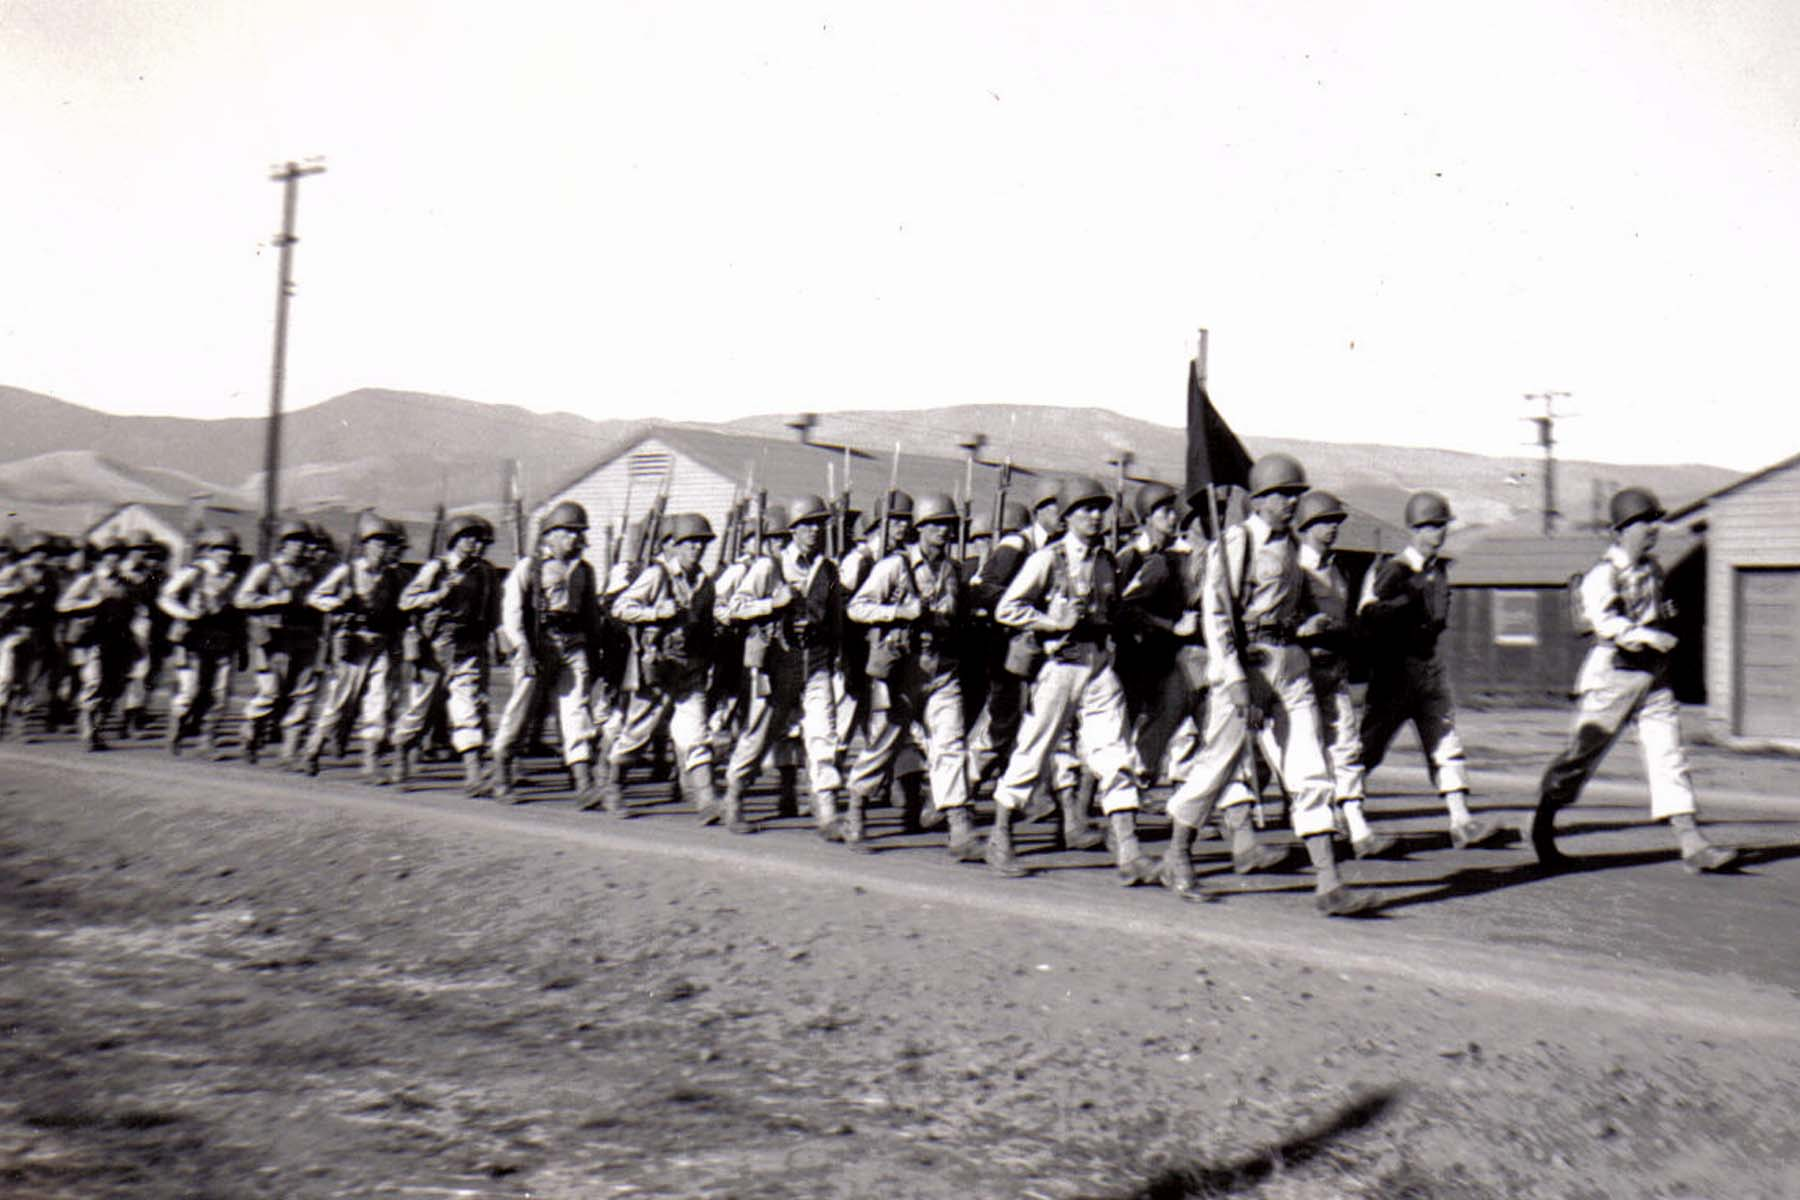 C30 Camp San Luis Obispo - August 2_ 1943 parade - F Company heads home